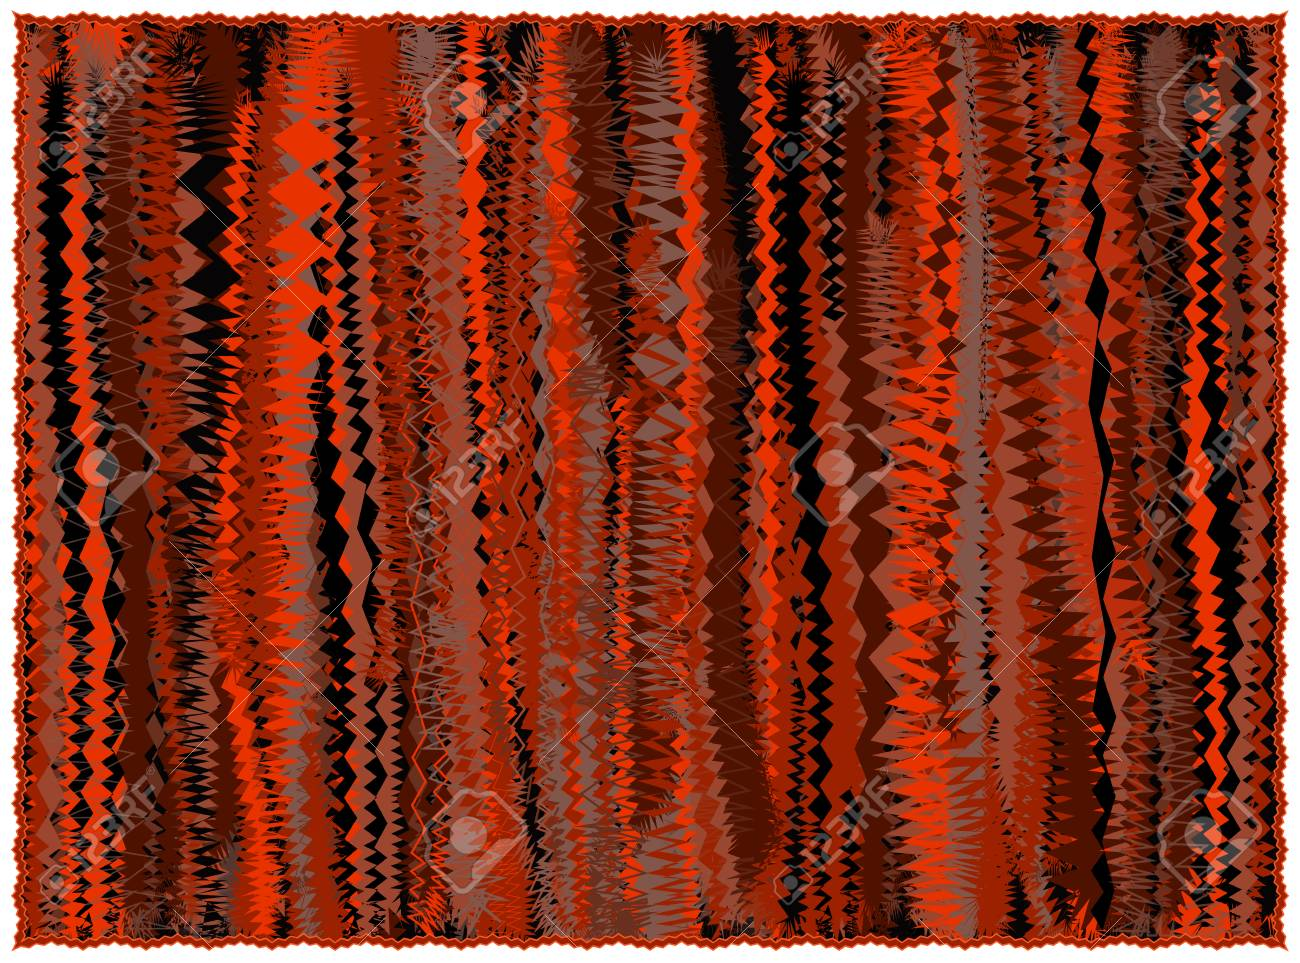 Grunge Striped Rug In Orange Brown Black Colors With Fringe Isolated